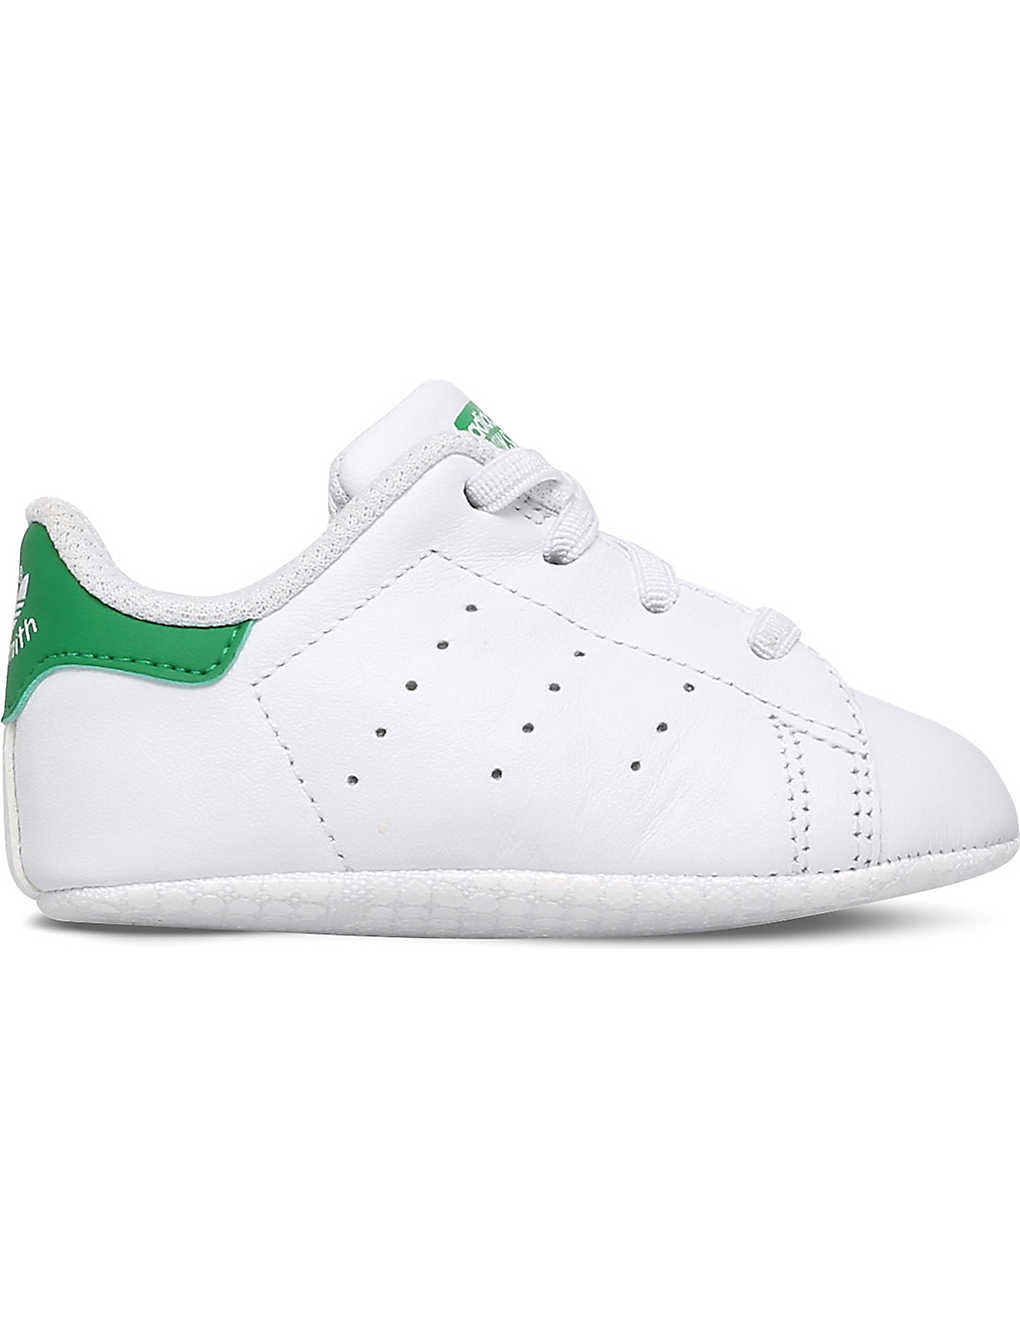 ADIDAS - Stan Smith leather trainers 0 months-2 years  5cd22c007